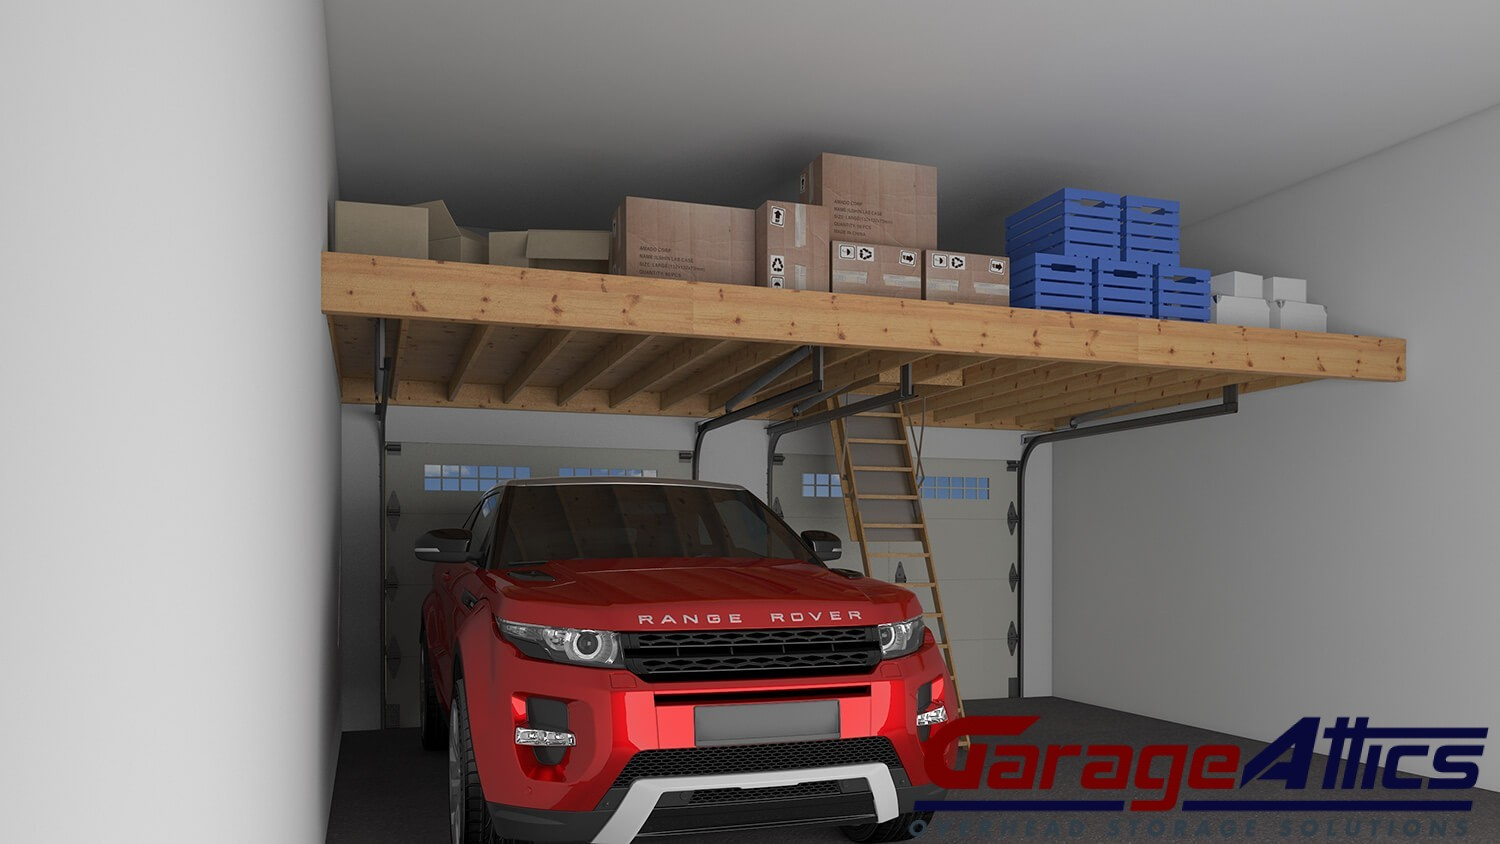 Garage storage ideas custom overhead storage lofts for How to build a garage loft